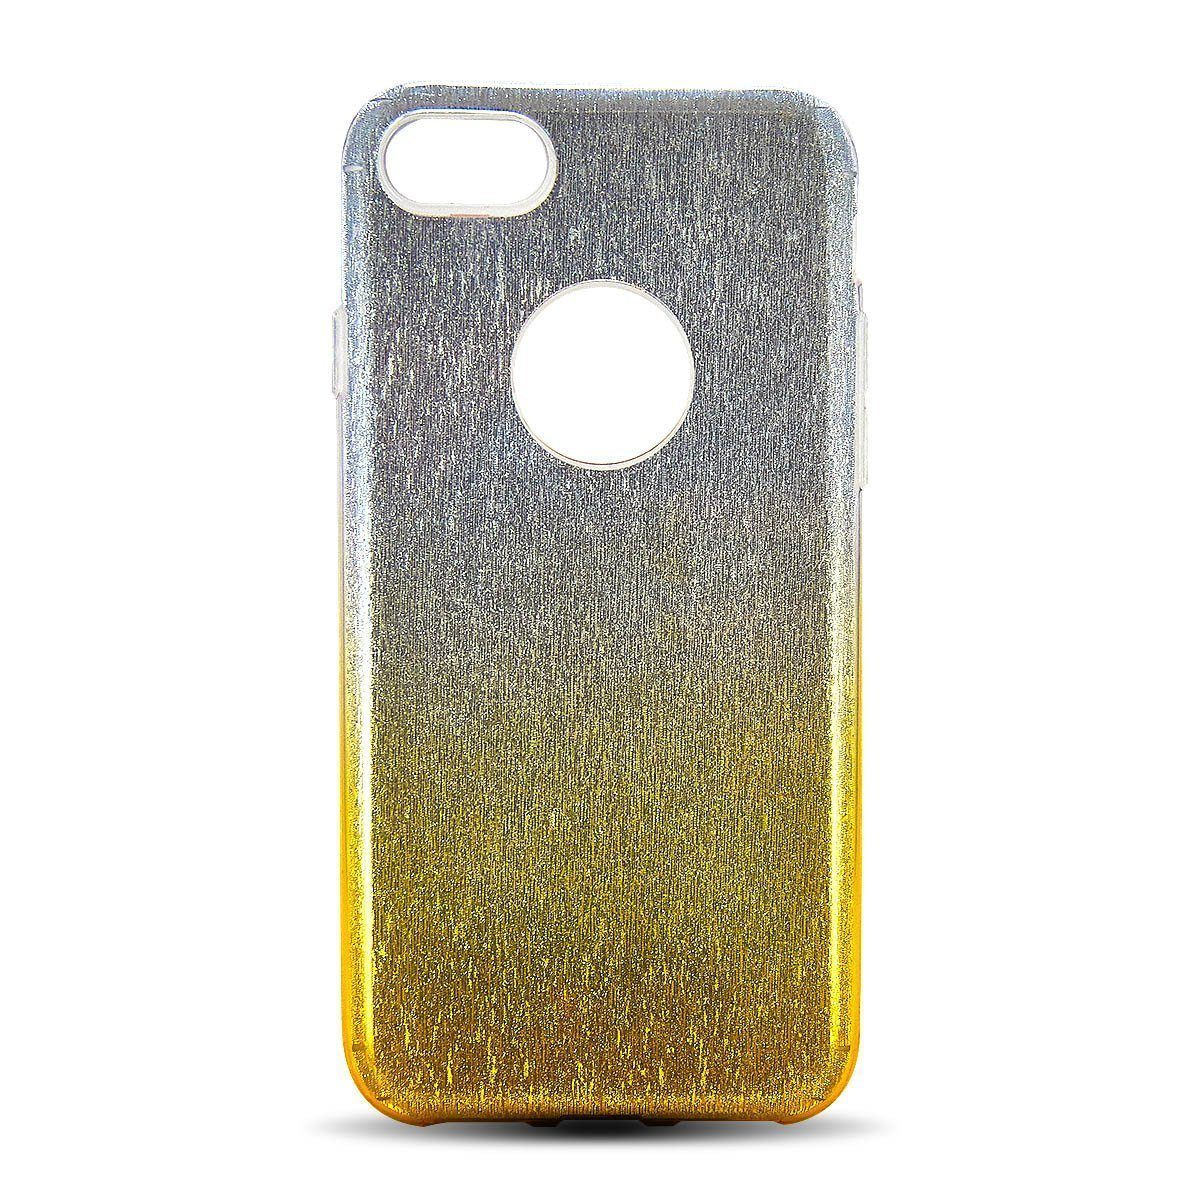 Show Case for iPhone 6/6S/7 /8 - Gold